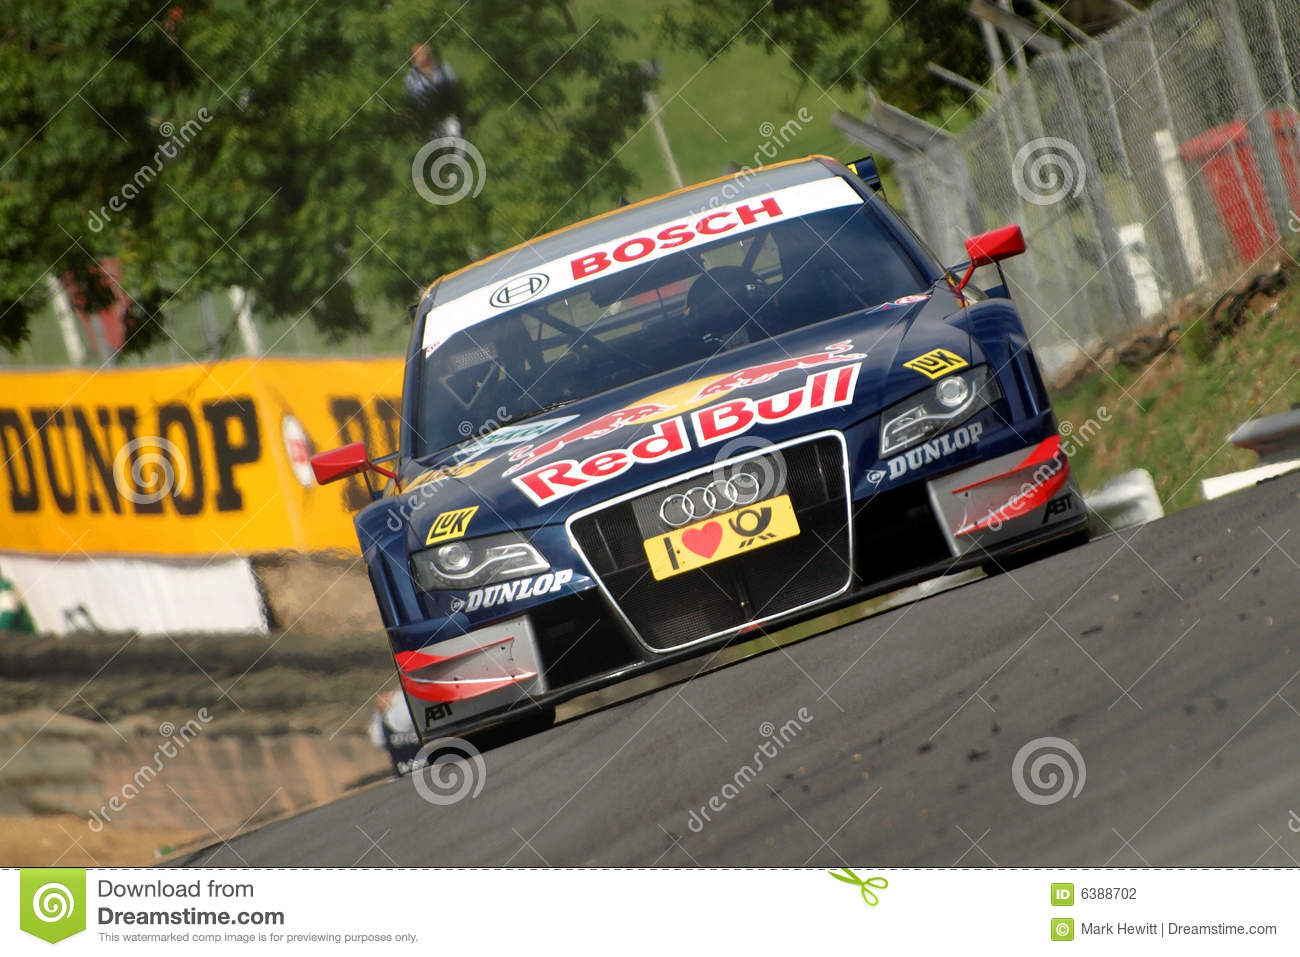 Audi A4 Dtm Race Car Editorial Photography Image Of Crest 6388702